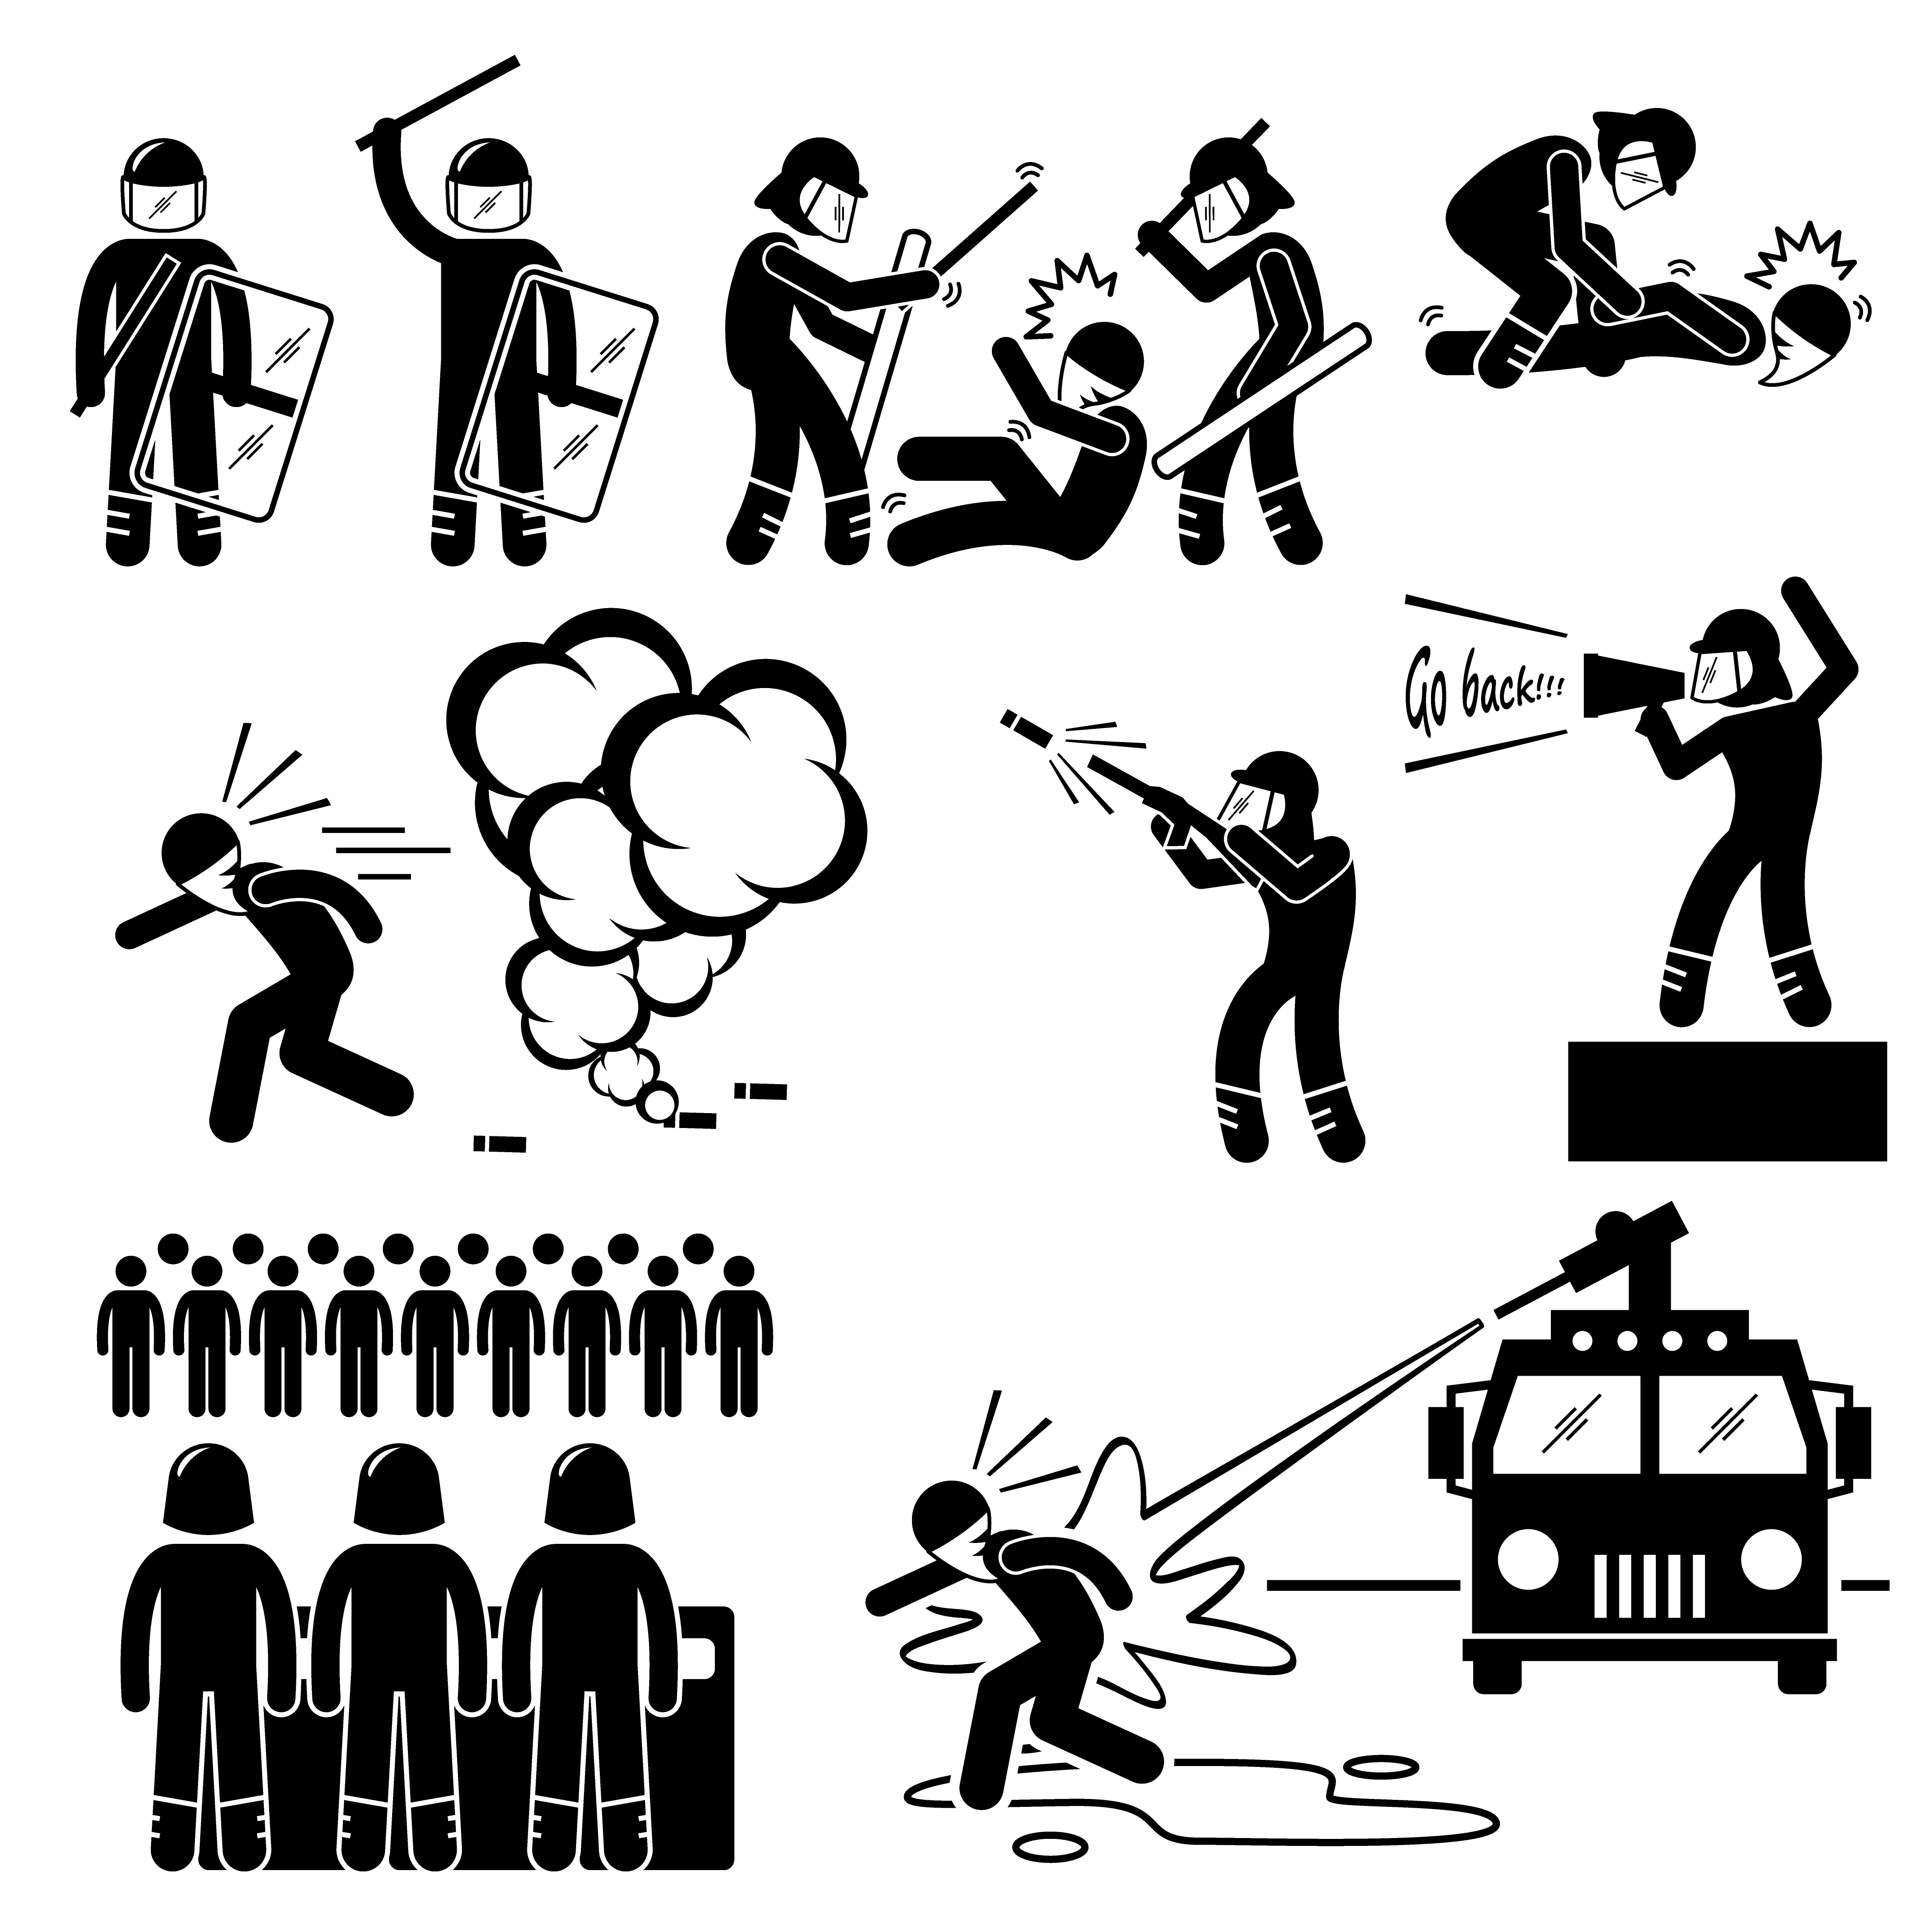 Riot Police Stick Figure Pictogram Icons. - Download Free ...